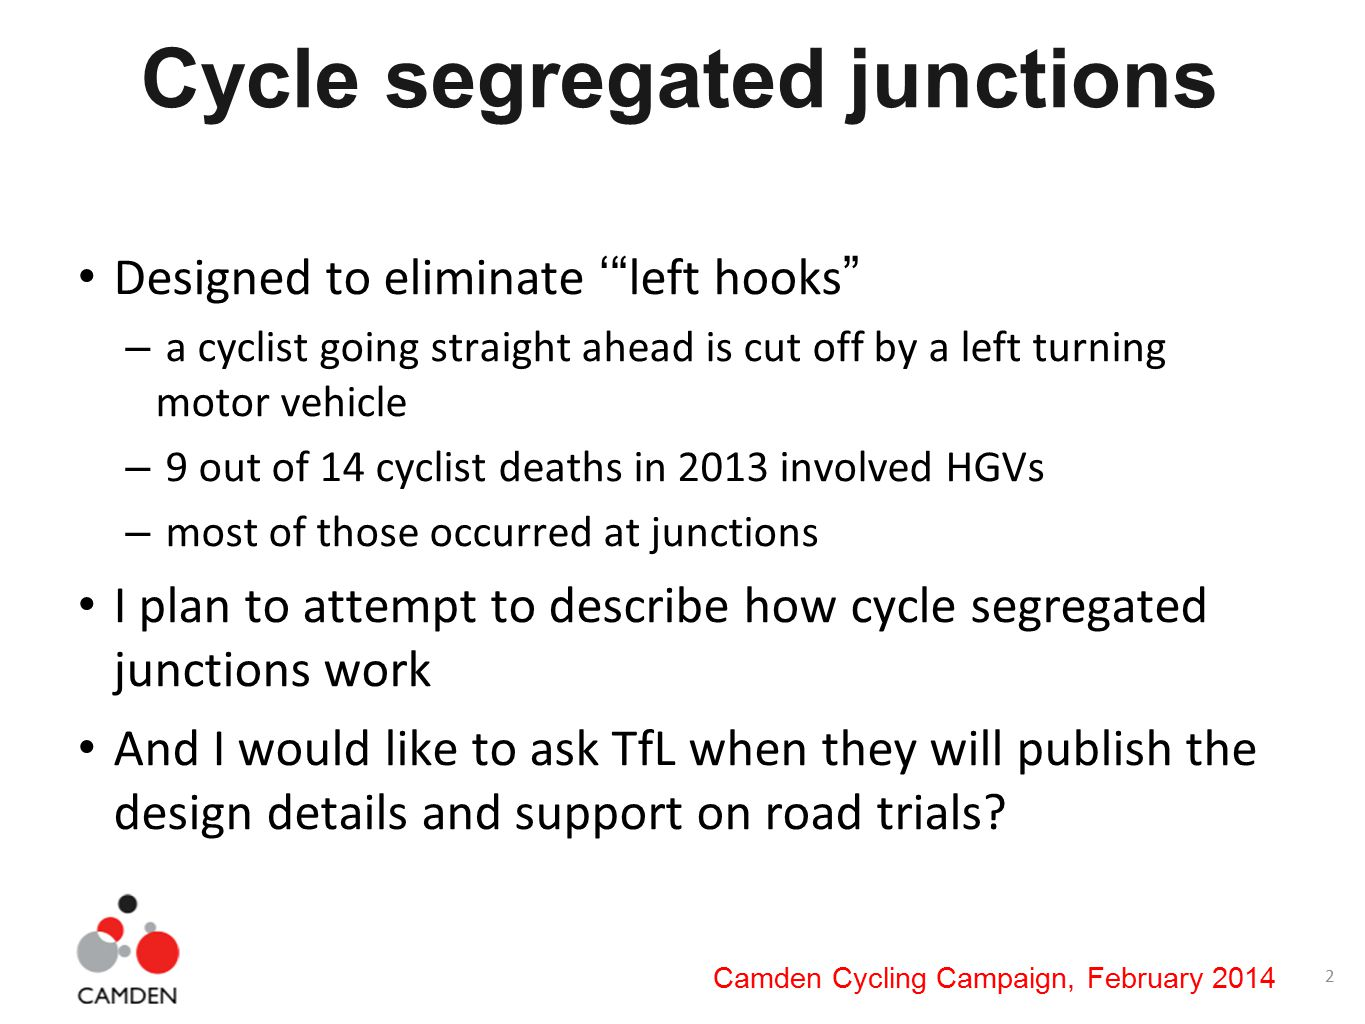 2 Camden Cycling Campaign, February 2014 Cycle segregated junctions Designed to eliminate ' left hooks – a cyclist going straight ahead is cut off by a left turning motor vehicle – 9 out of 14 cyclist deaths in 2013 involved HGVs – most of those occurred at junctions I plan to attempt to describe how cycle segregated junctions work And I would like to ask TfL when they will publish the design details and support on road trials?